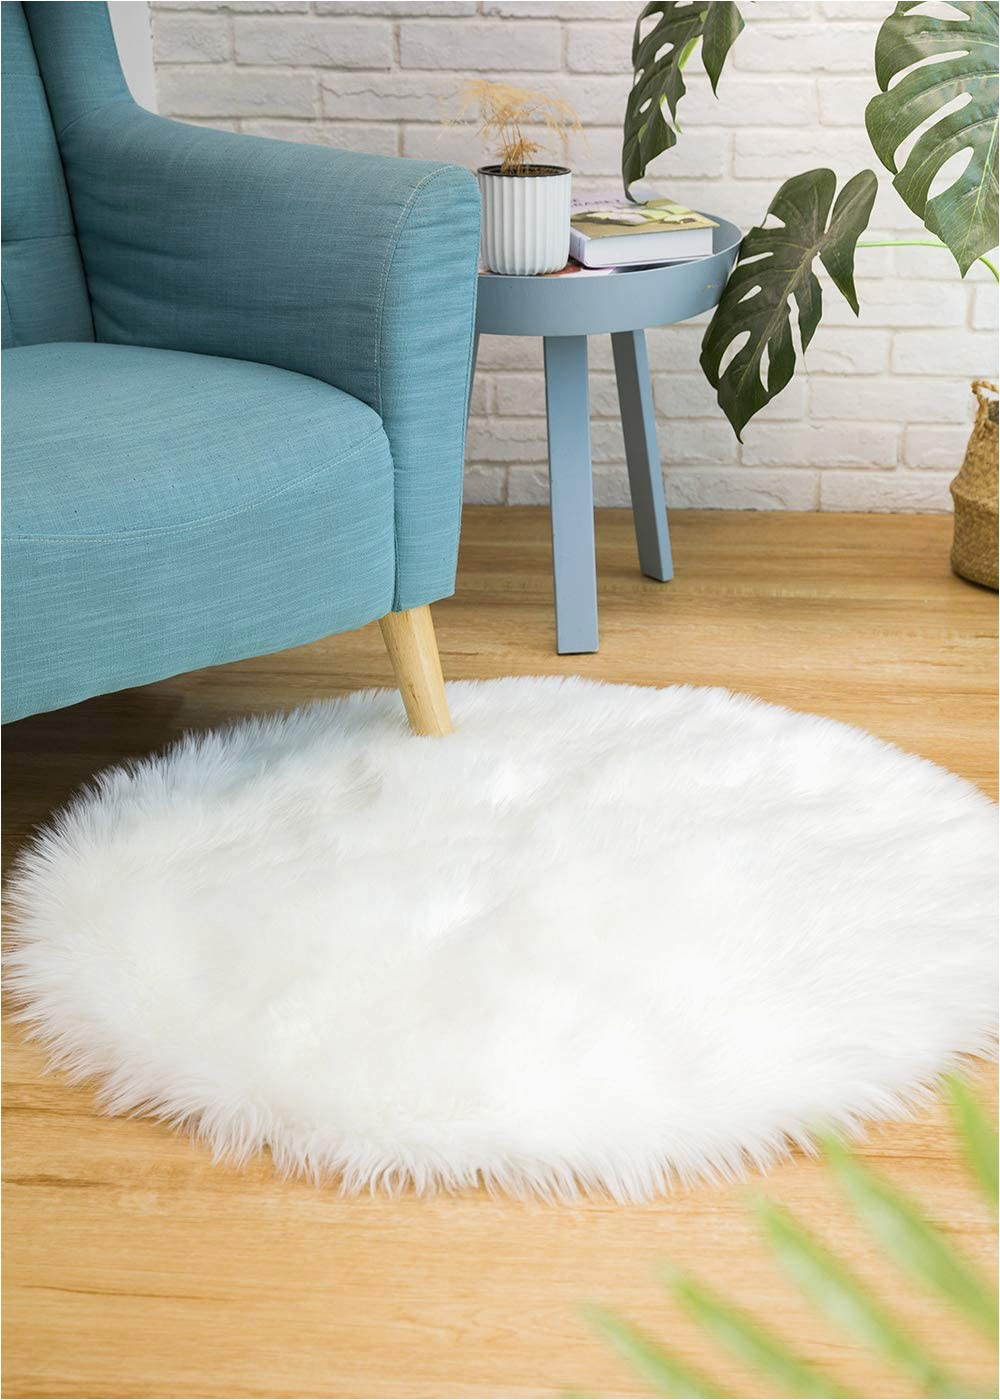 Faux Sheepskin area Rug 8×10 Ciicool soft Faux Sheepskin Fur area Rugs Round Fluffy Rugs for Bedroom Silky Fuzzy Carpet Furry Rug for Living Room Girls Rooms White 3 X 3 Feet